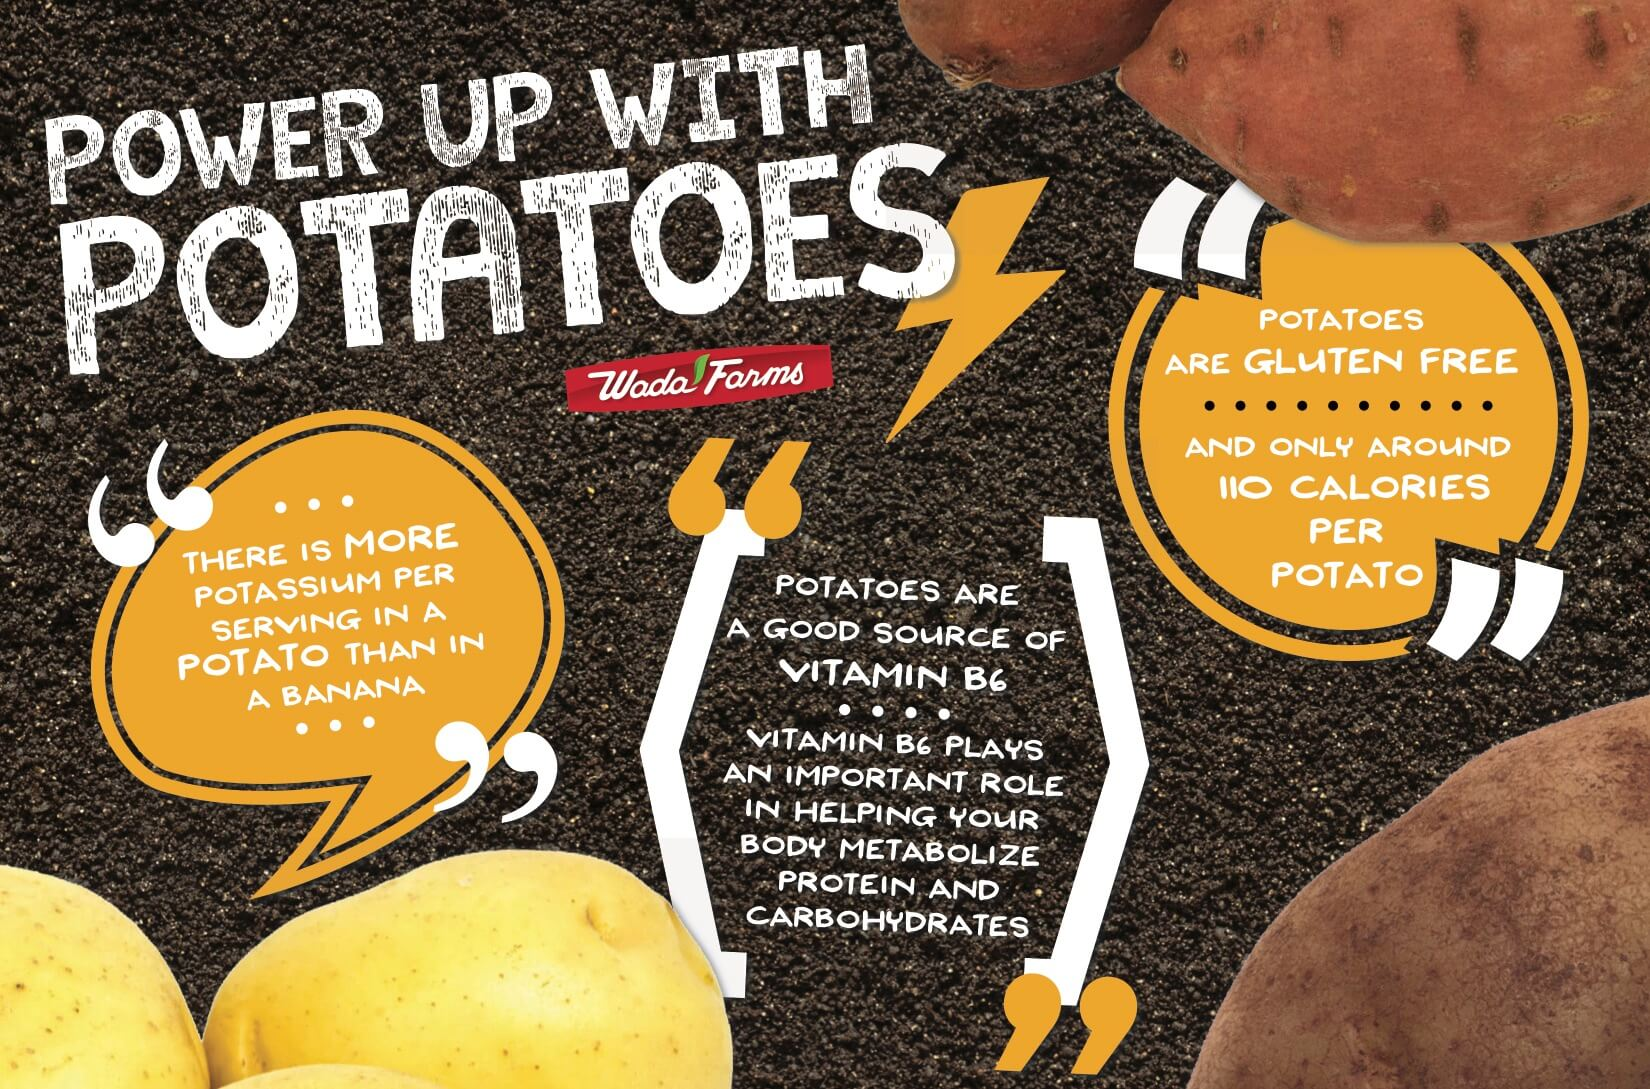 Power Up With Potatoes